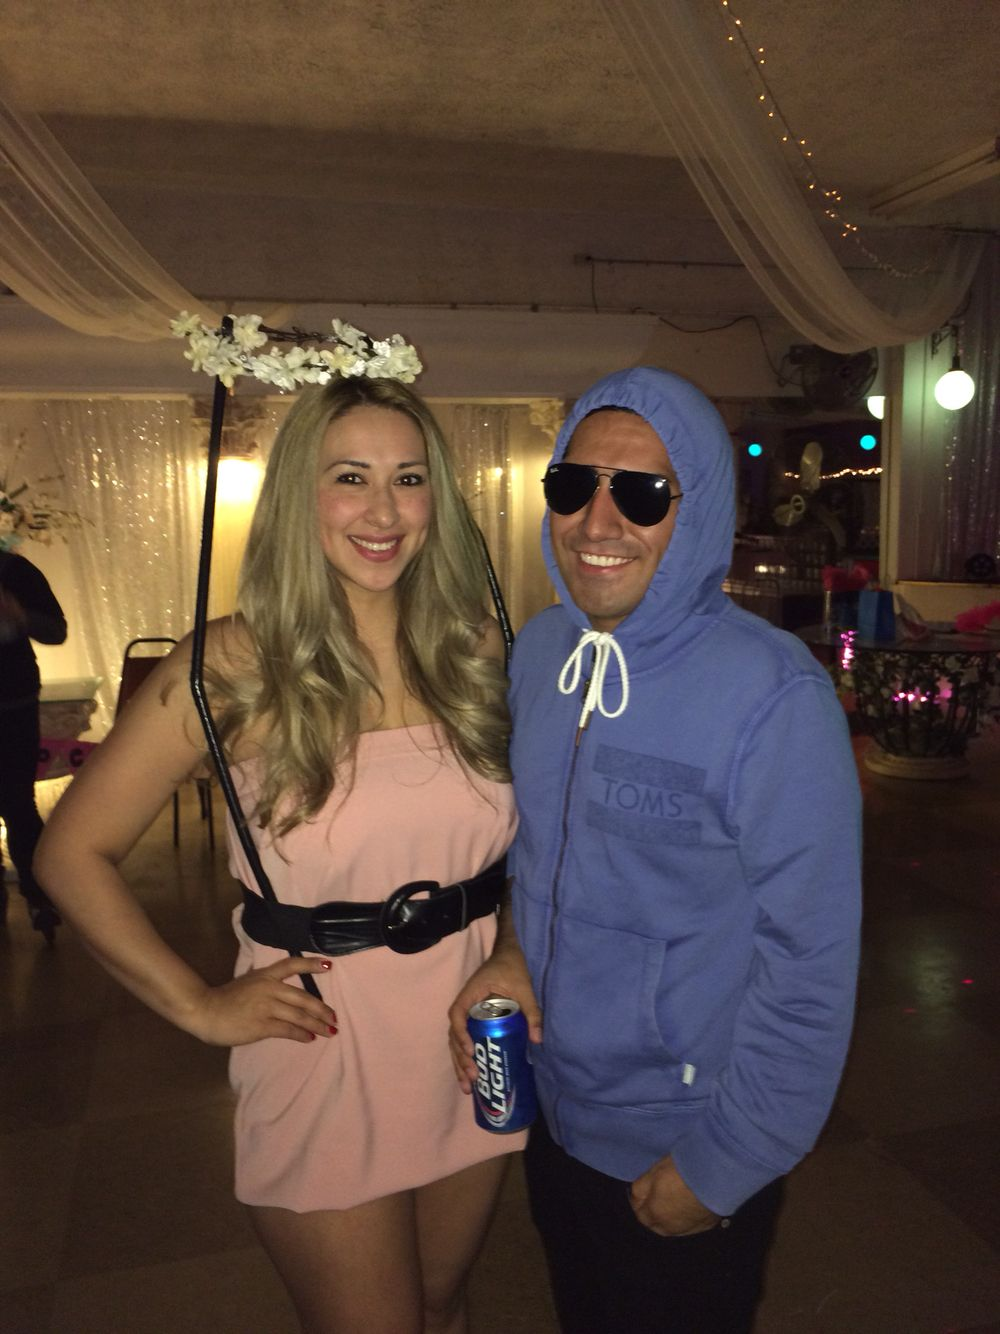 Mean Girls Theme Party Regina George And Damien Funny Party